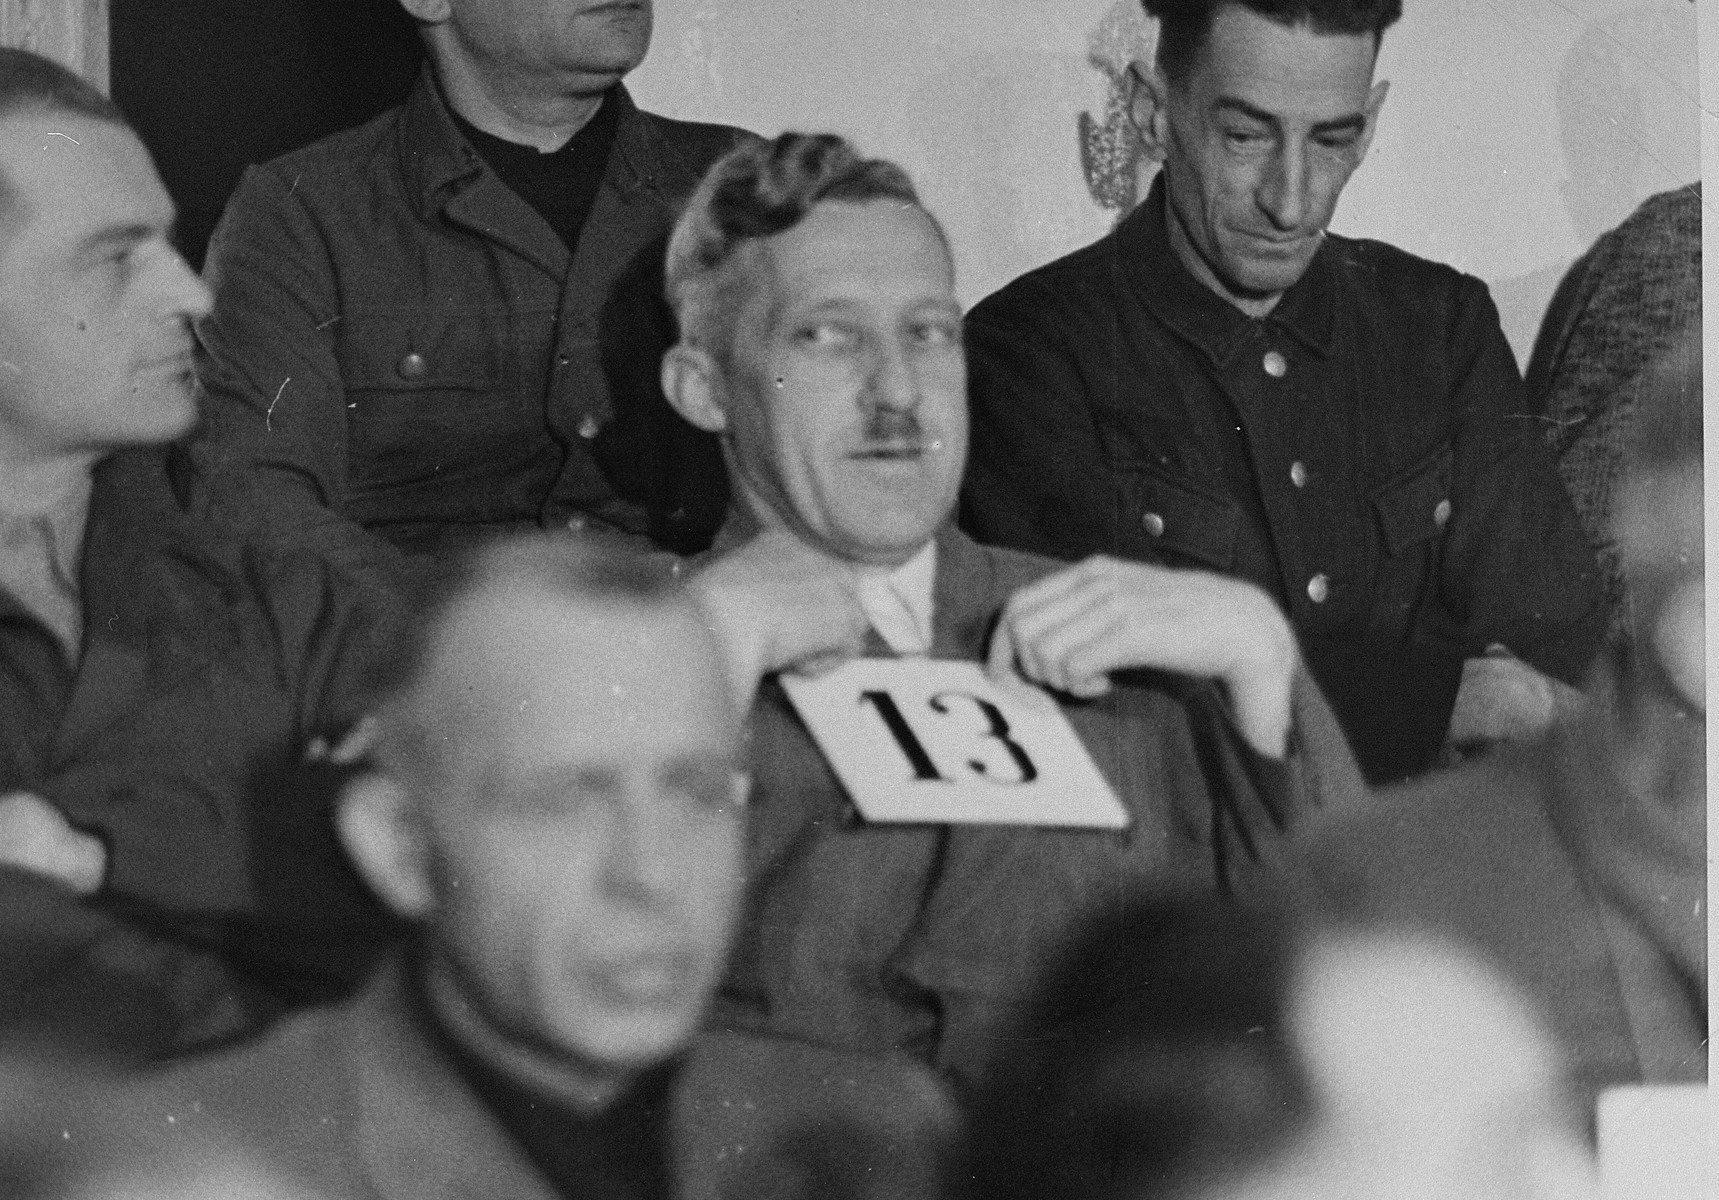 August Eigruber, former Gauleiter of Upper Austria and a defendant at the trial of 61 former camp personnel and prisoners from Mauthausen, sits in his place in the defendants' dock.    Eigruber was convicted and sentenced to death on May 13, 1946.